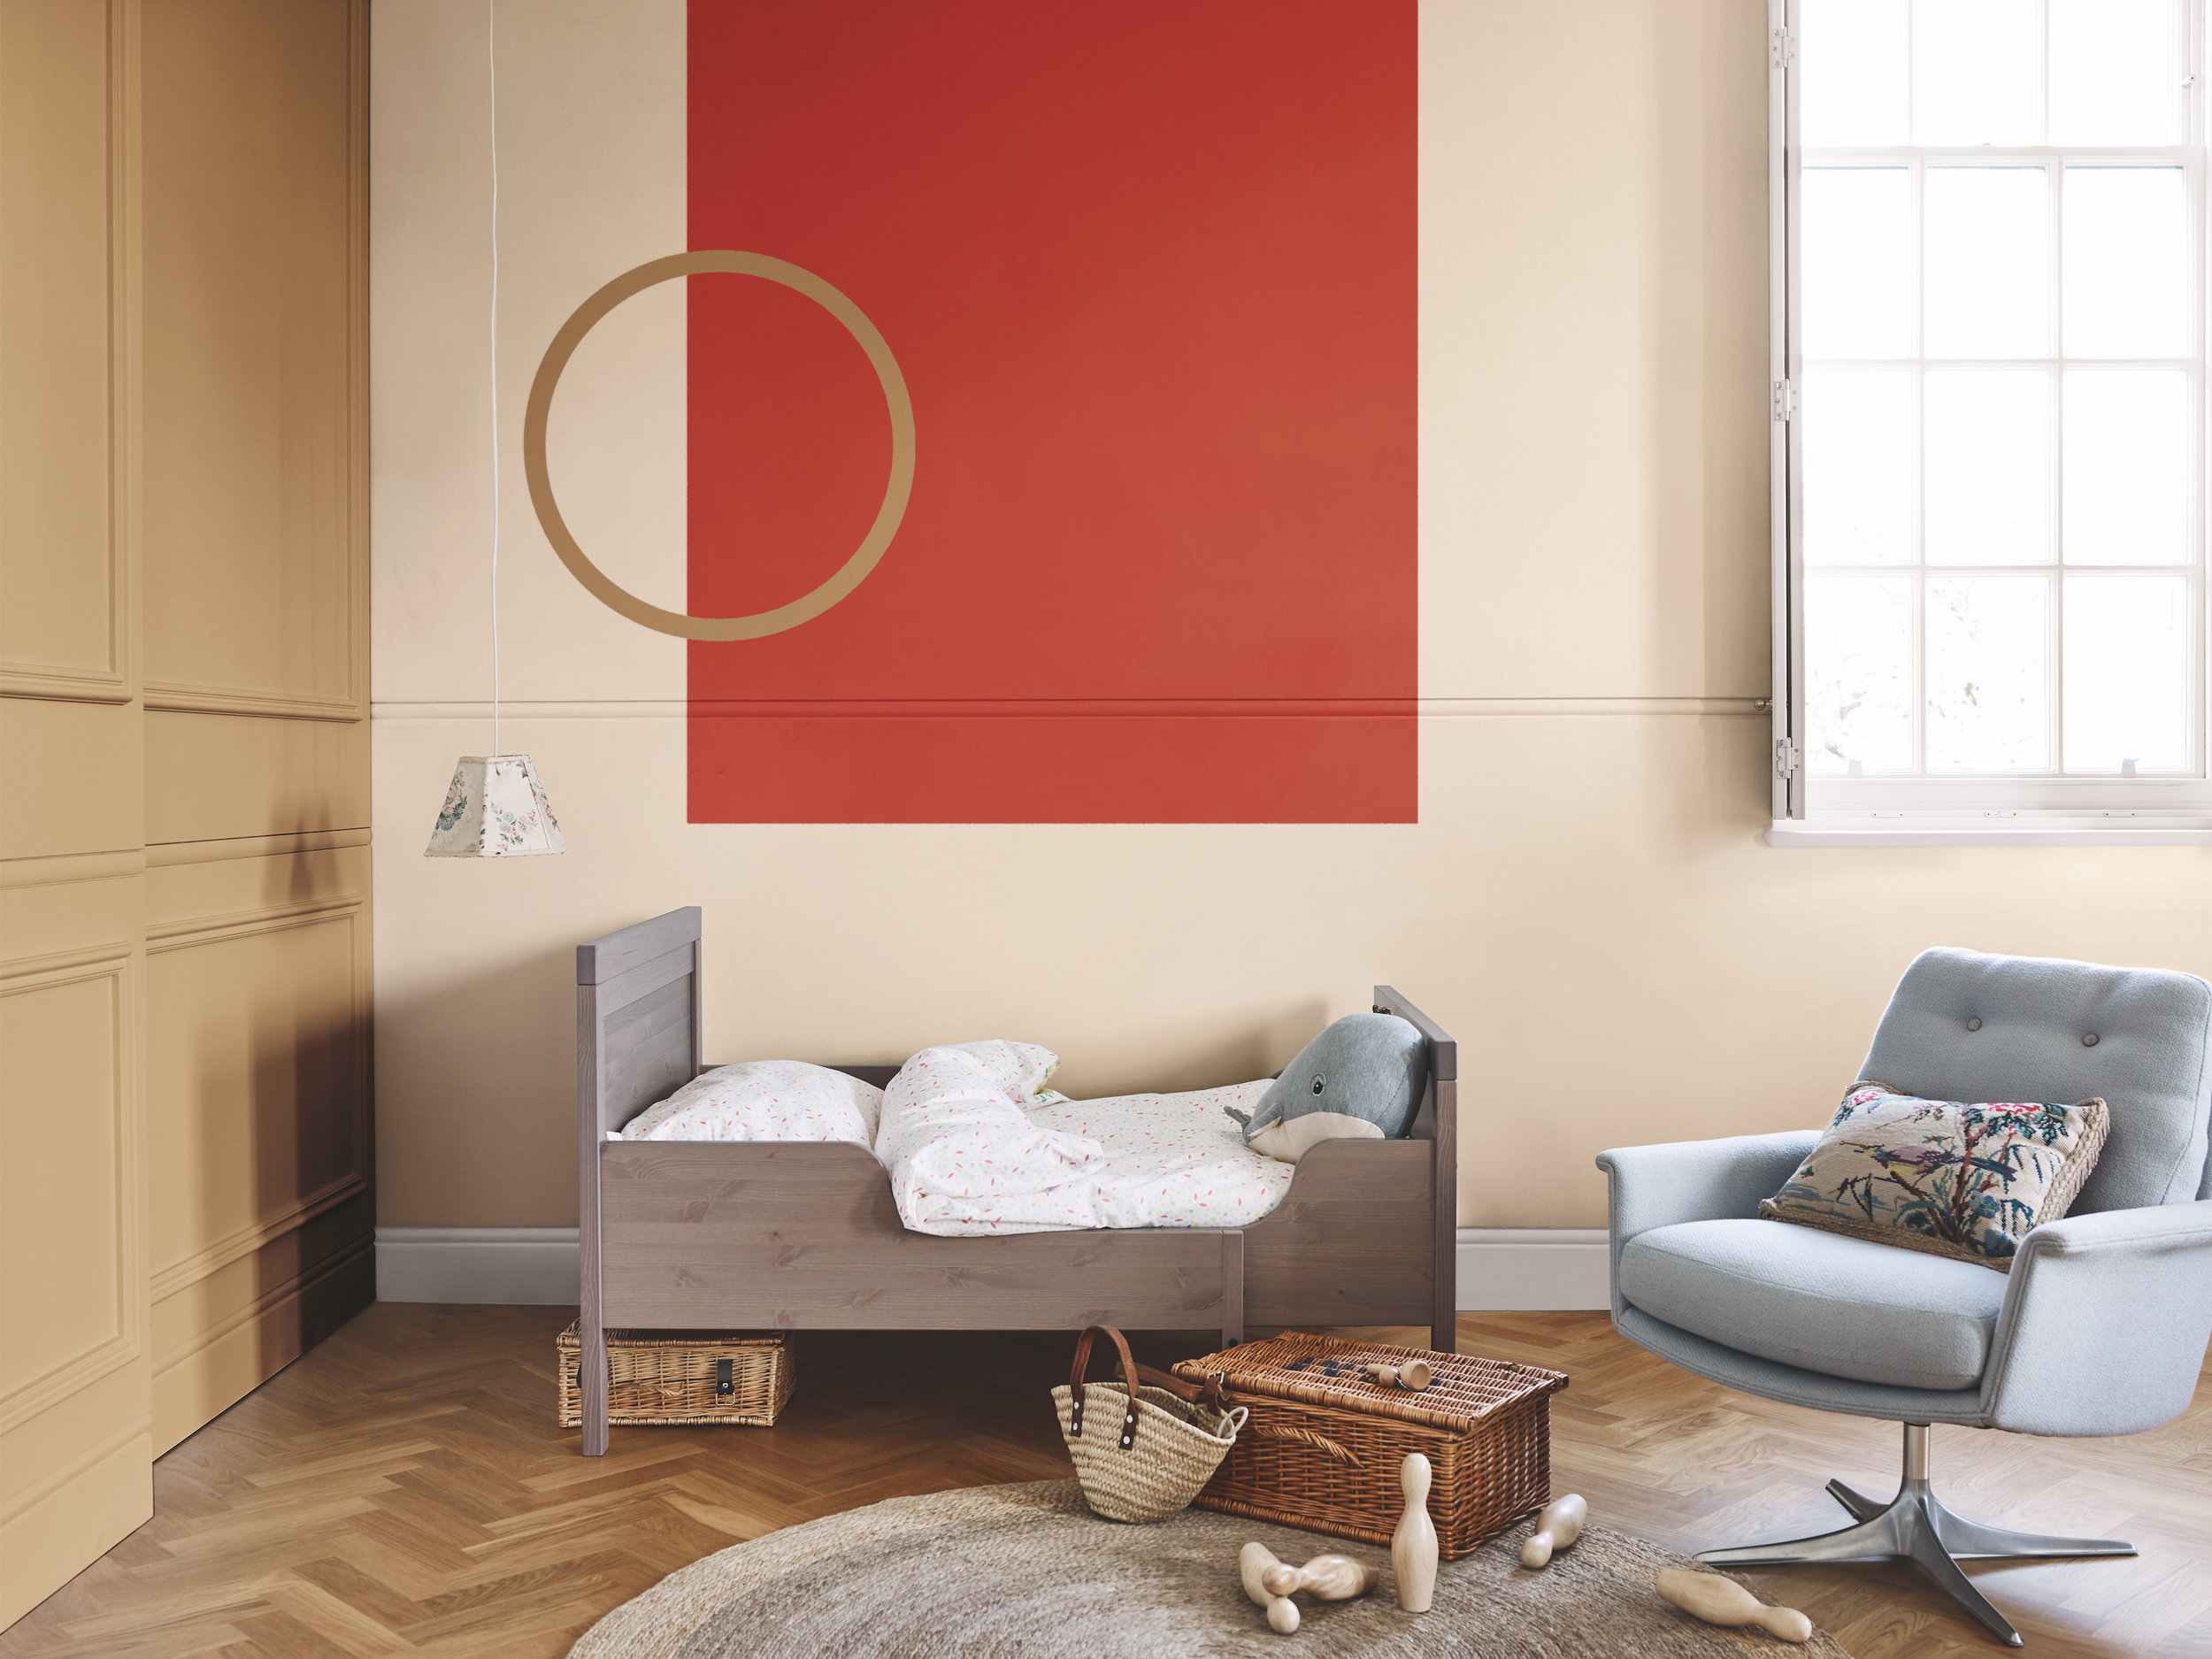 Dulux-Colour-Futures-Colour-of-the-Year-2019-A-place-to-love-Kidsroom-Inspiration-Global-BC-08C.jpg